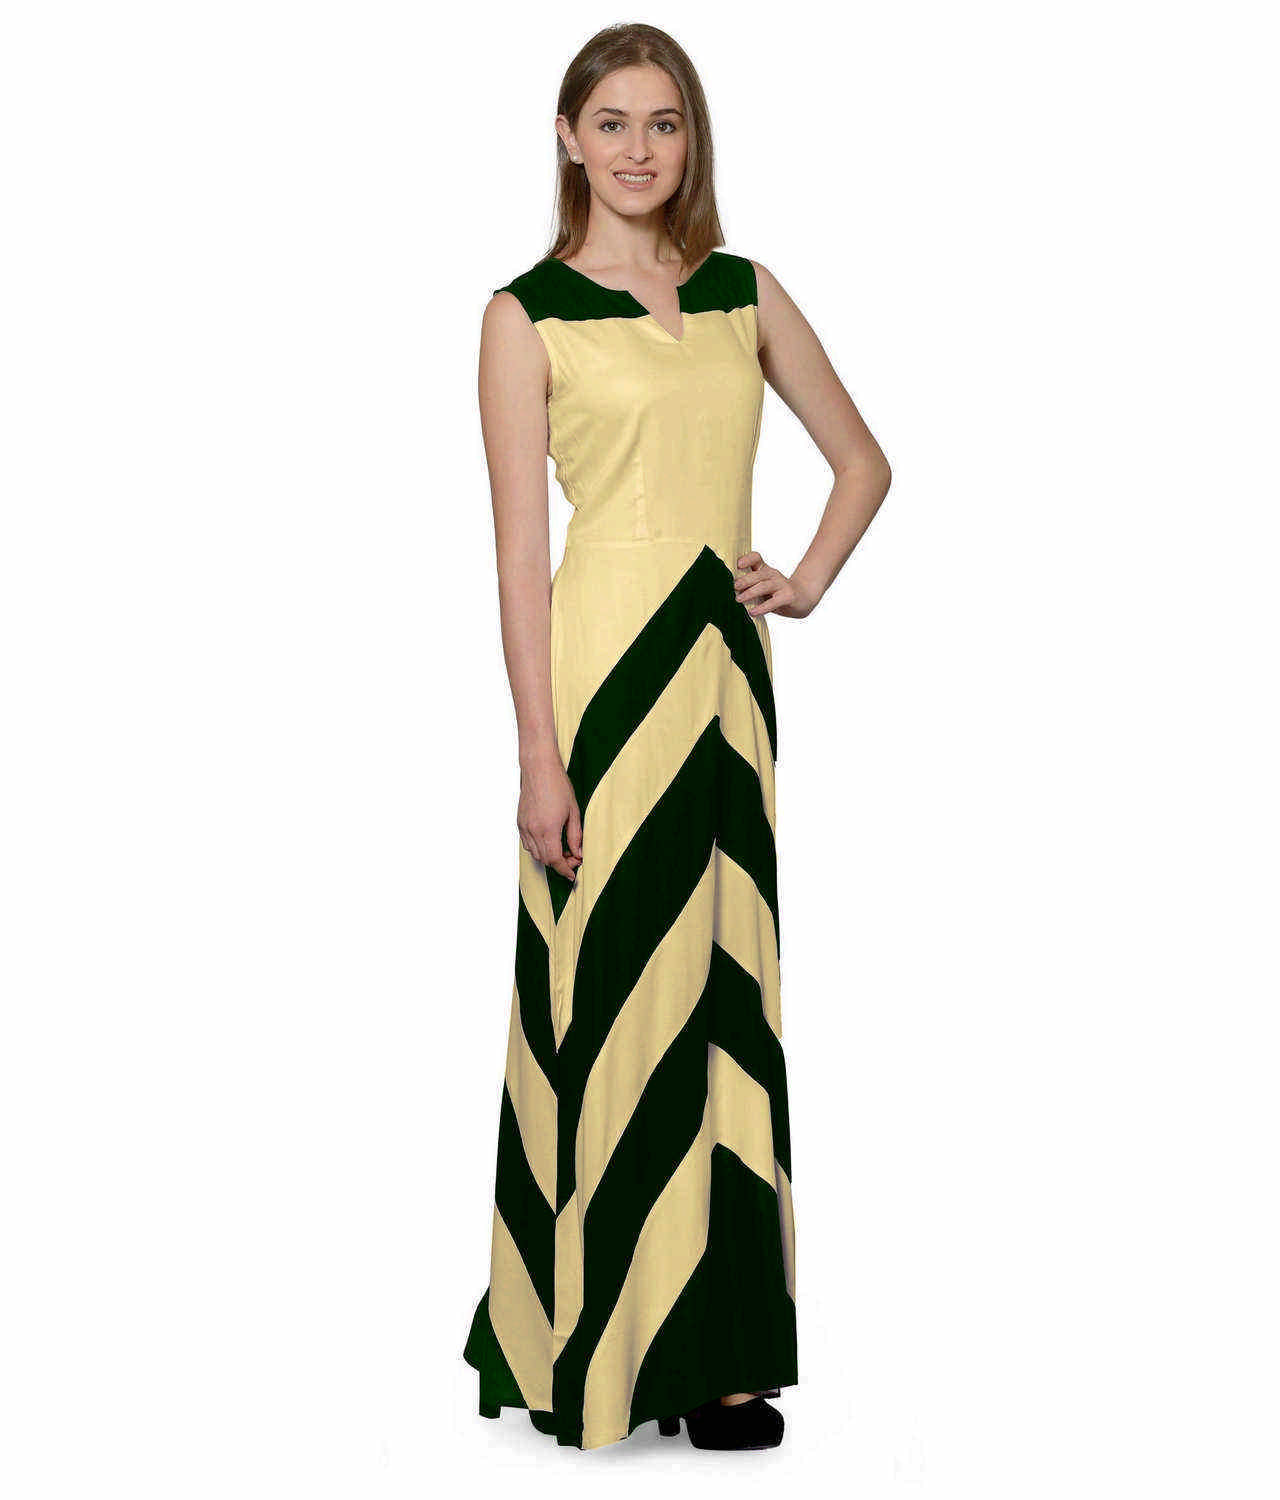 Color Block Empire Slim Fit Maxi Dress in Bottle Green:Gold